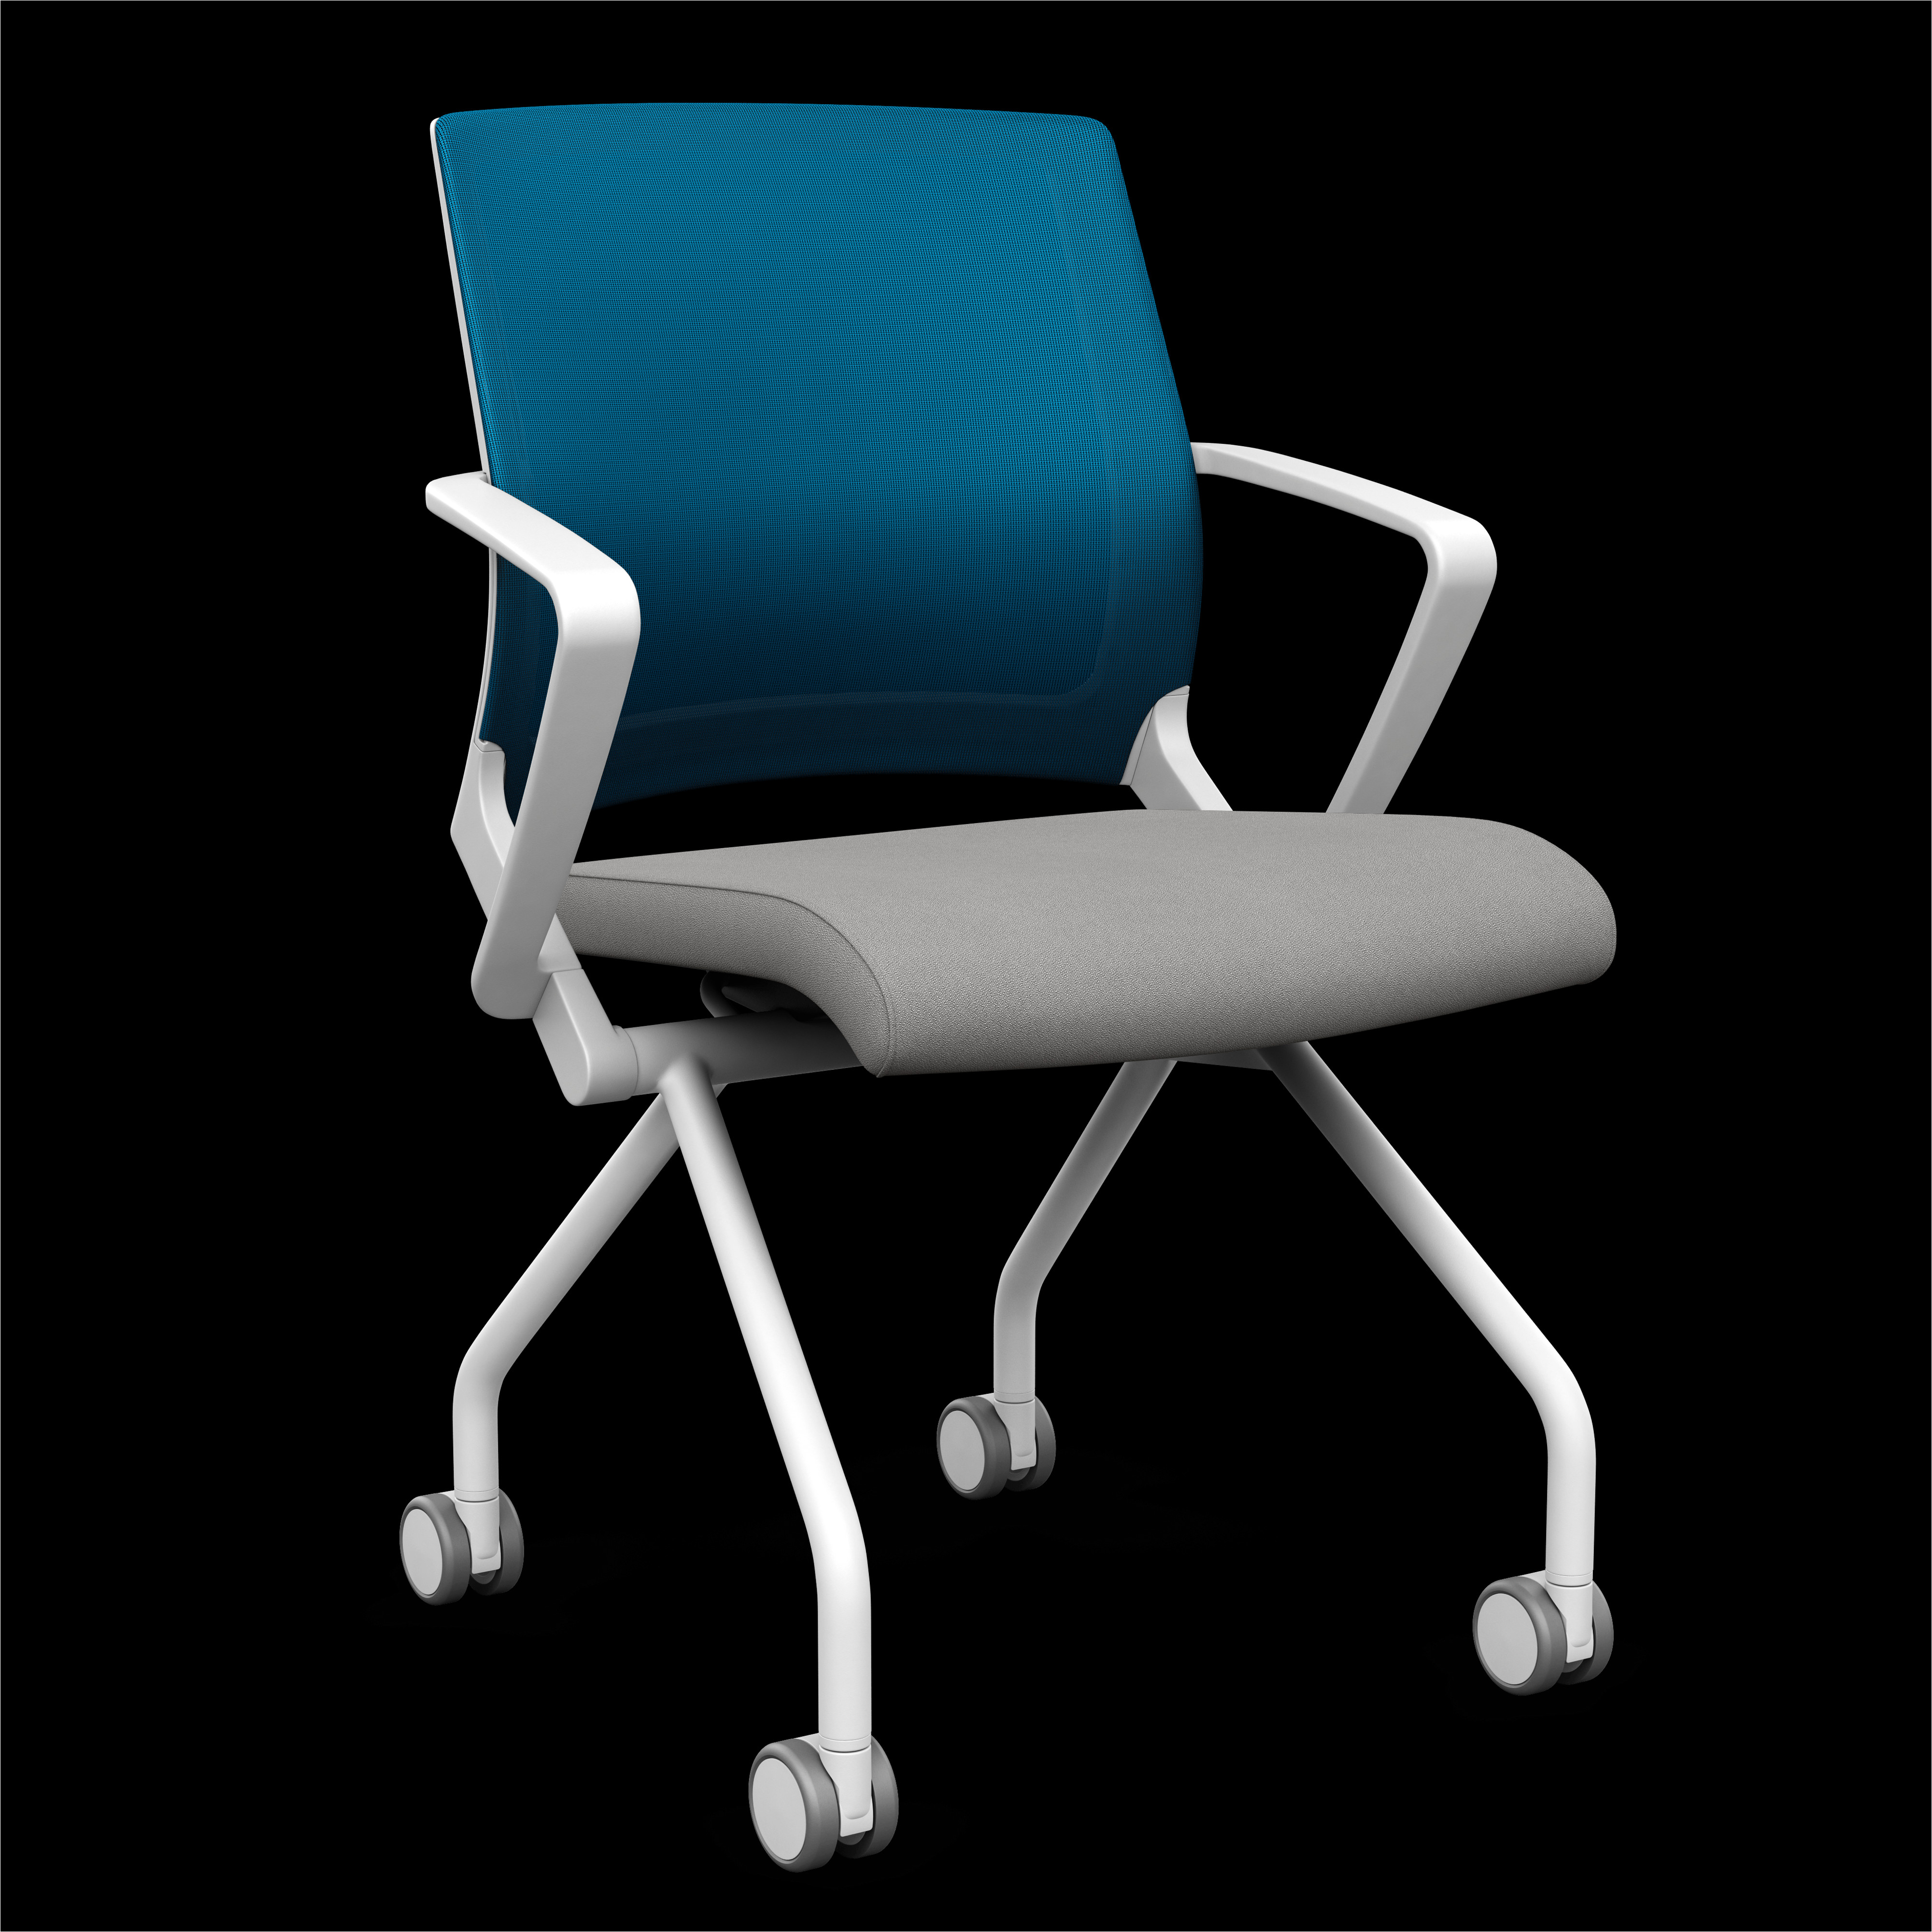 also consider movi nester a wit side chair